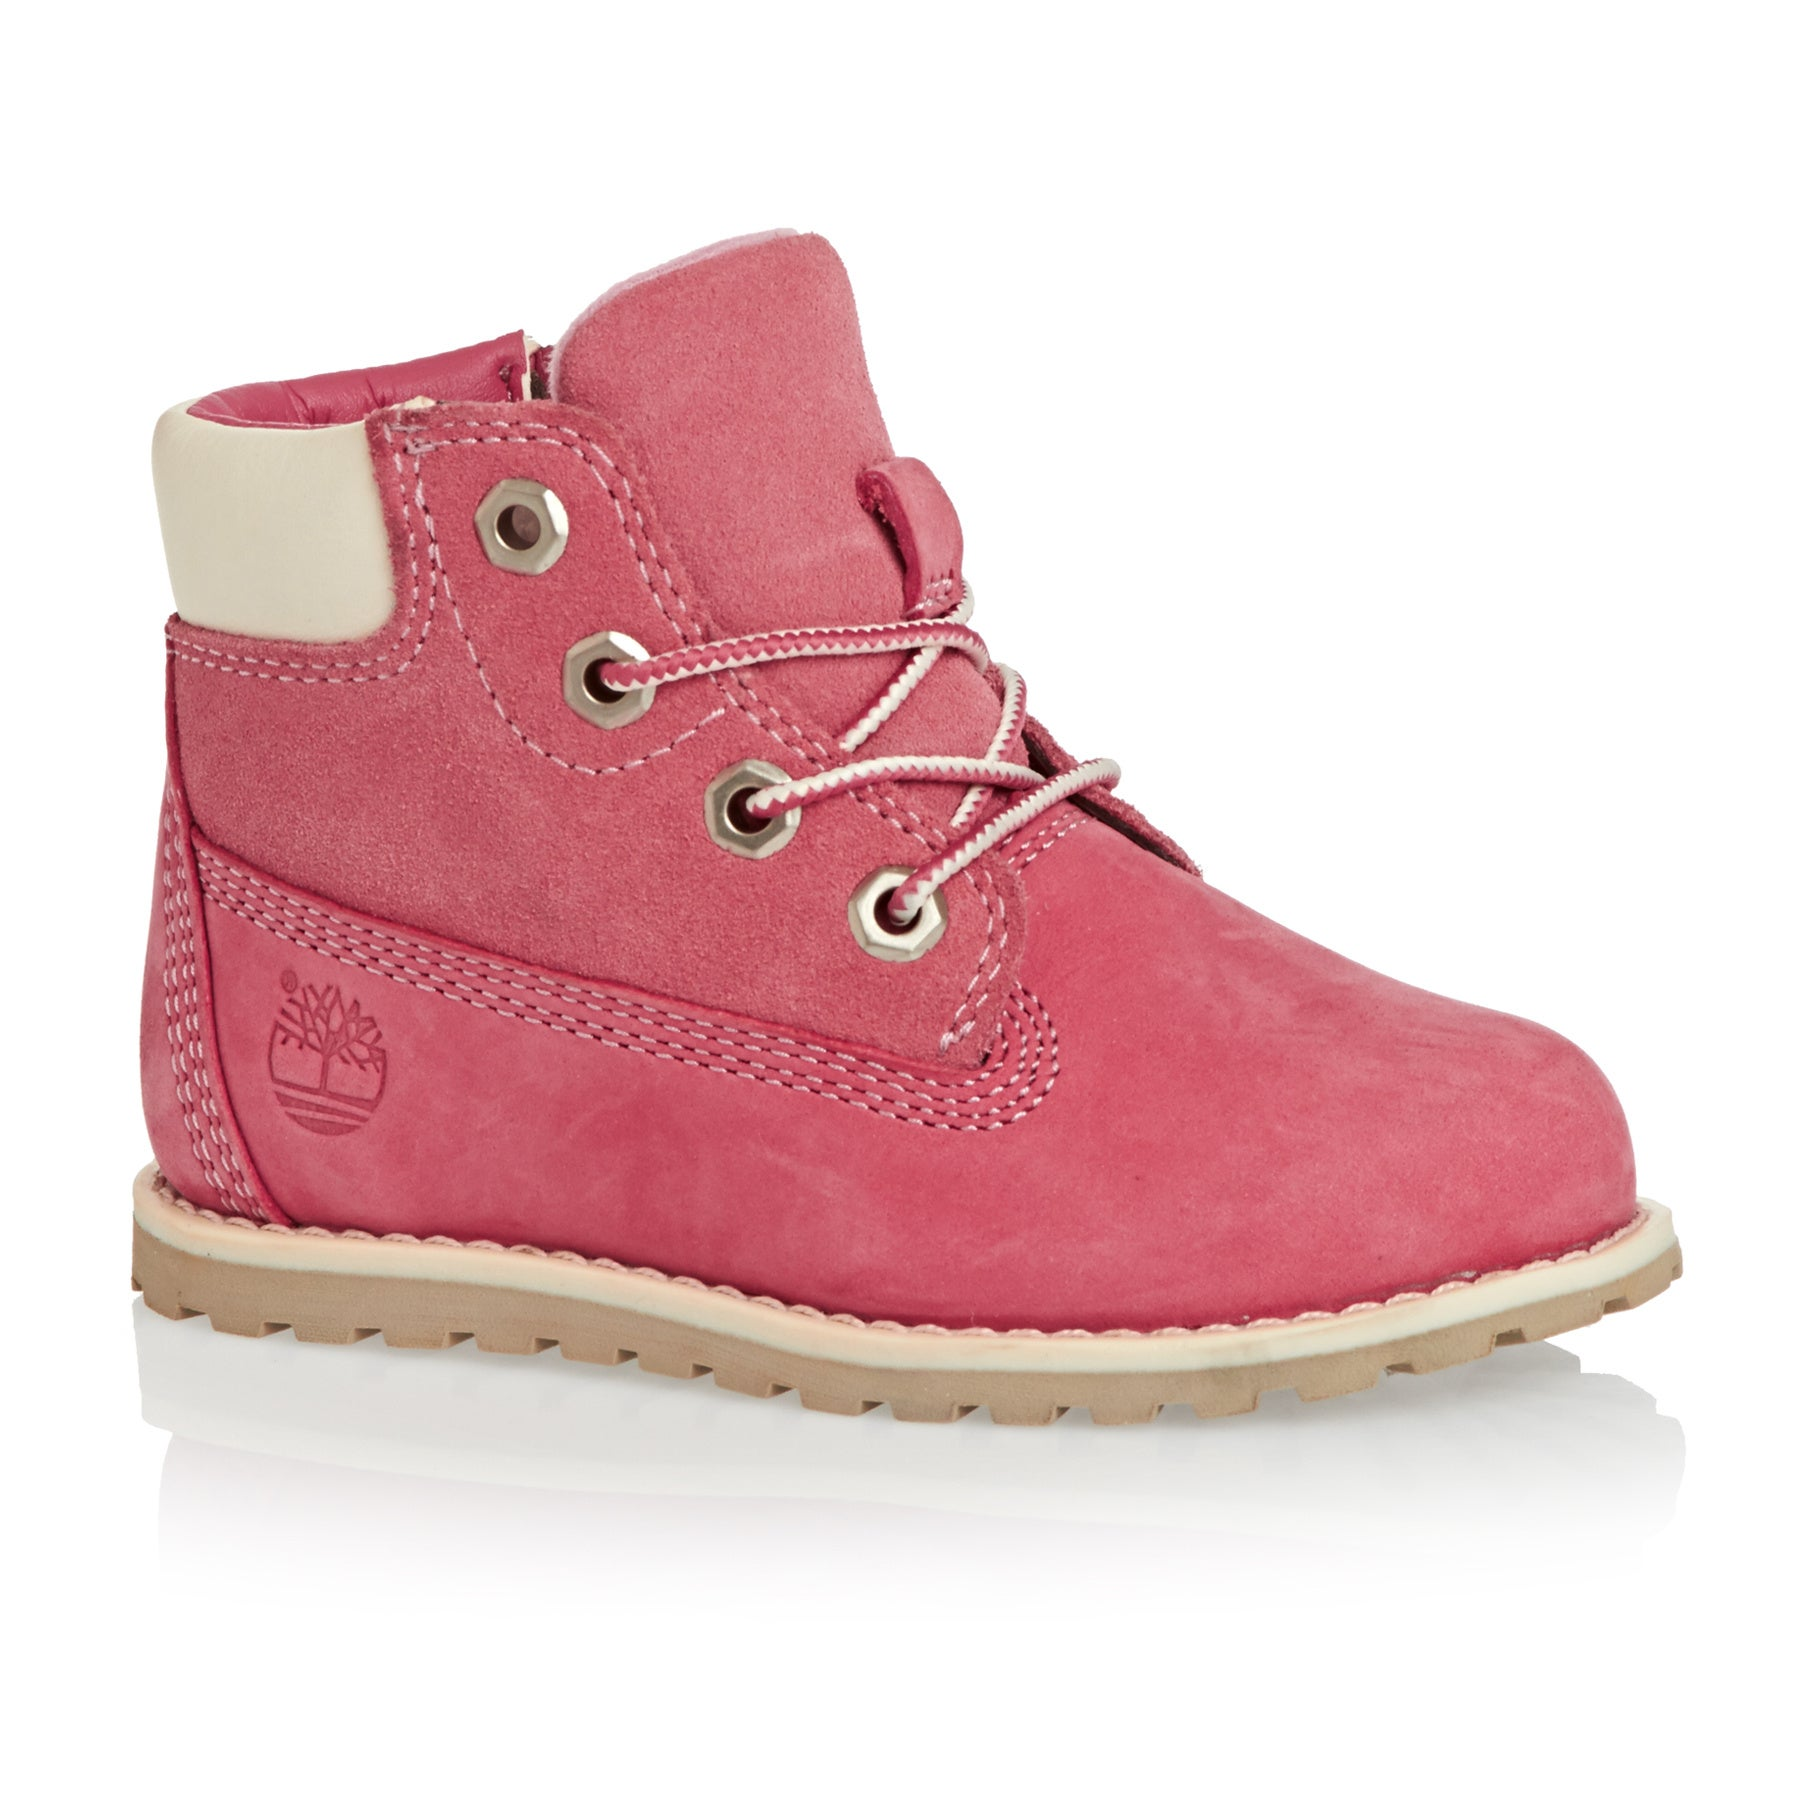 Timberland Pokey Pine 6in Side Zip Girls Boots - Pink Nubuck